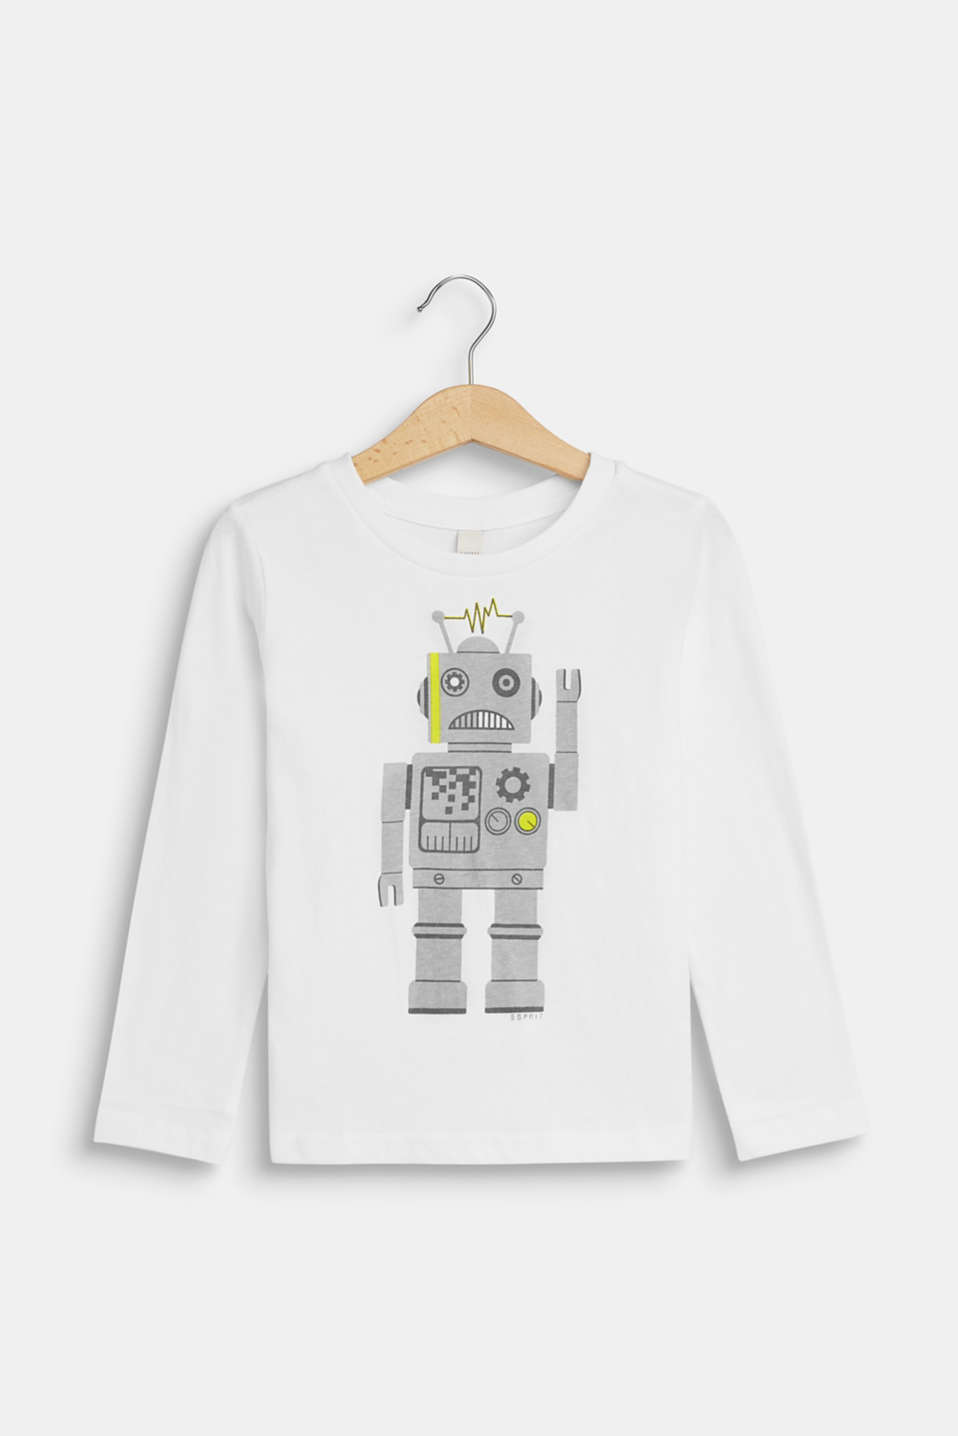 Esprit - Long sleeve top with a robot print, 100% cotton